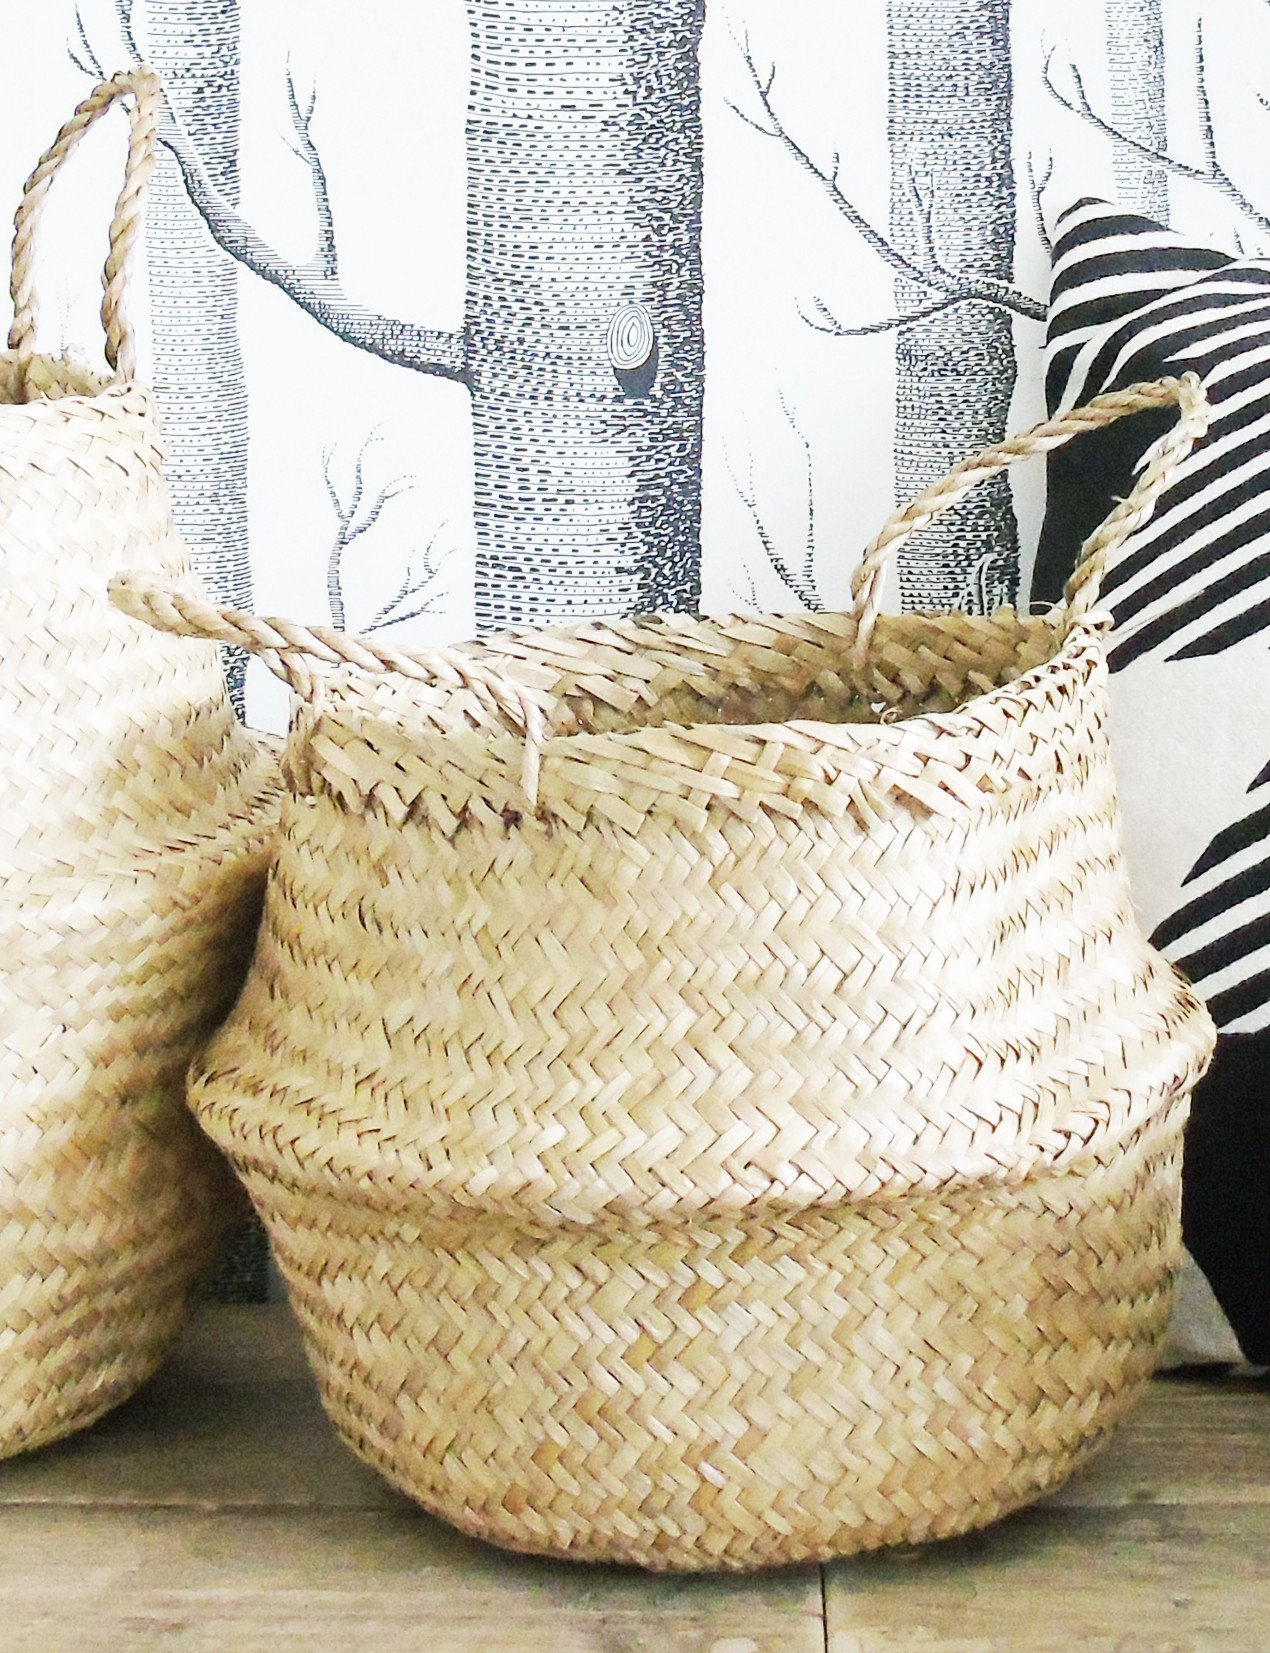 VNSea Natural Seagrass Belly Basket for Storage, Laundry, Picnic, Plant Pot Cover, and Woven Beach Bag (Medium)